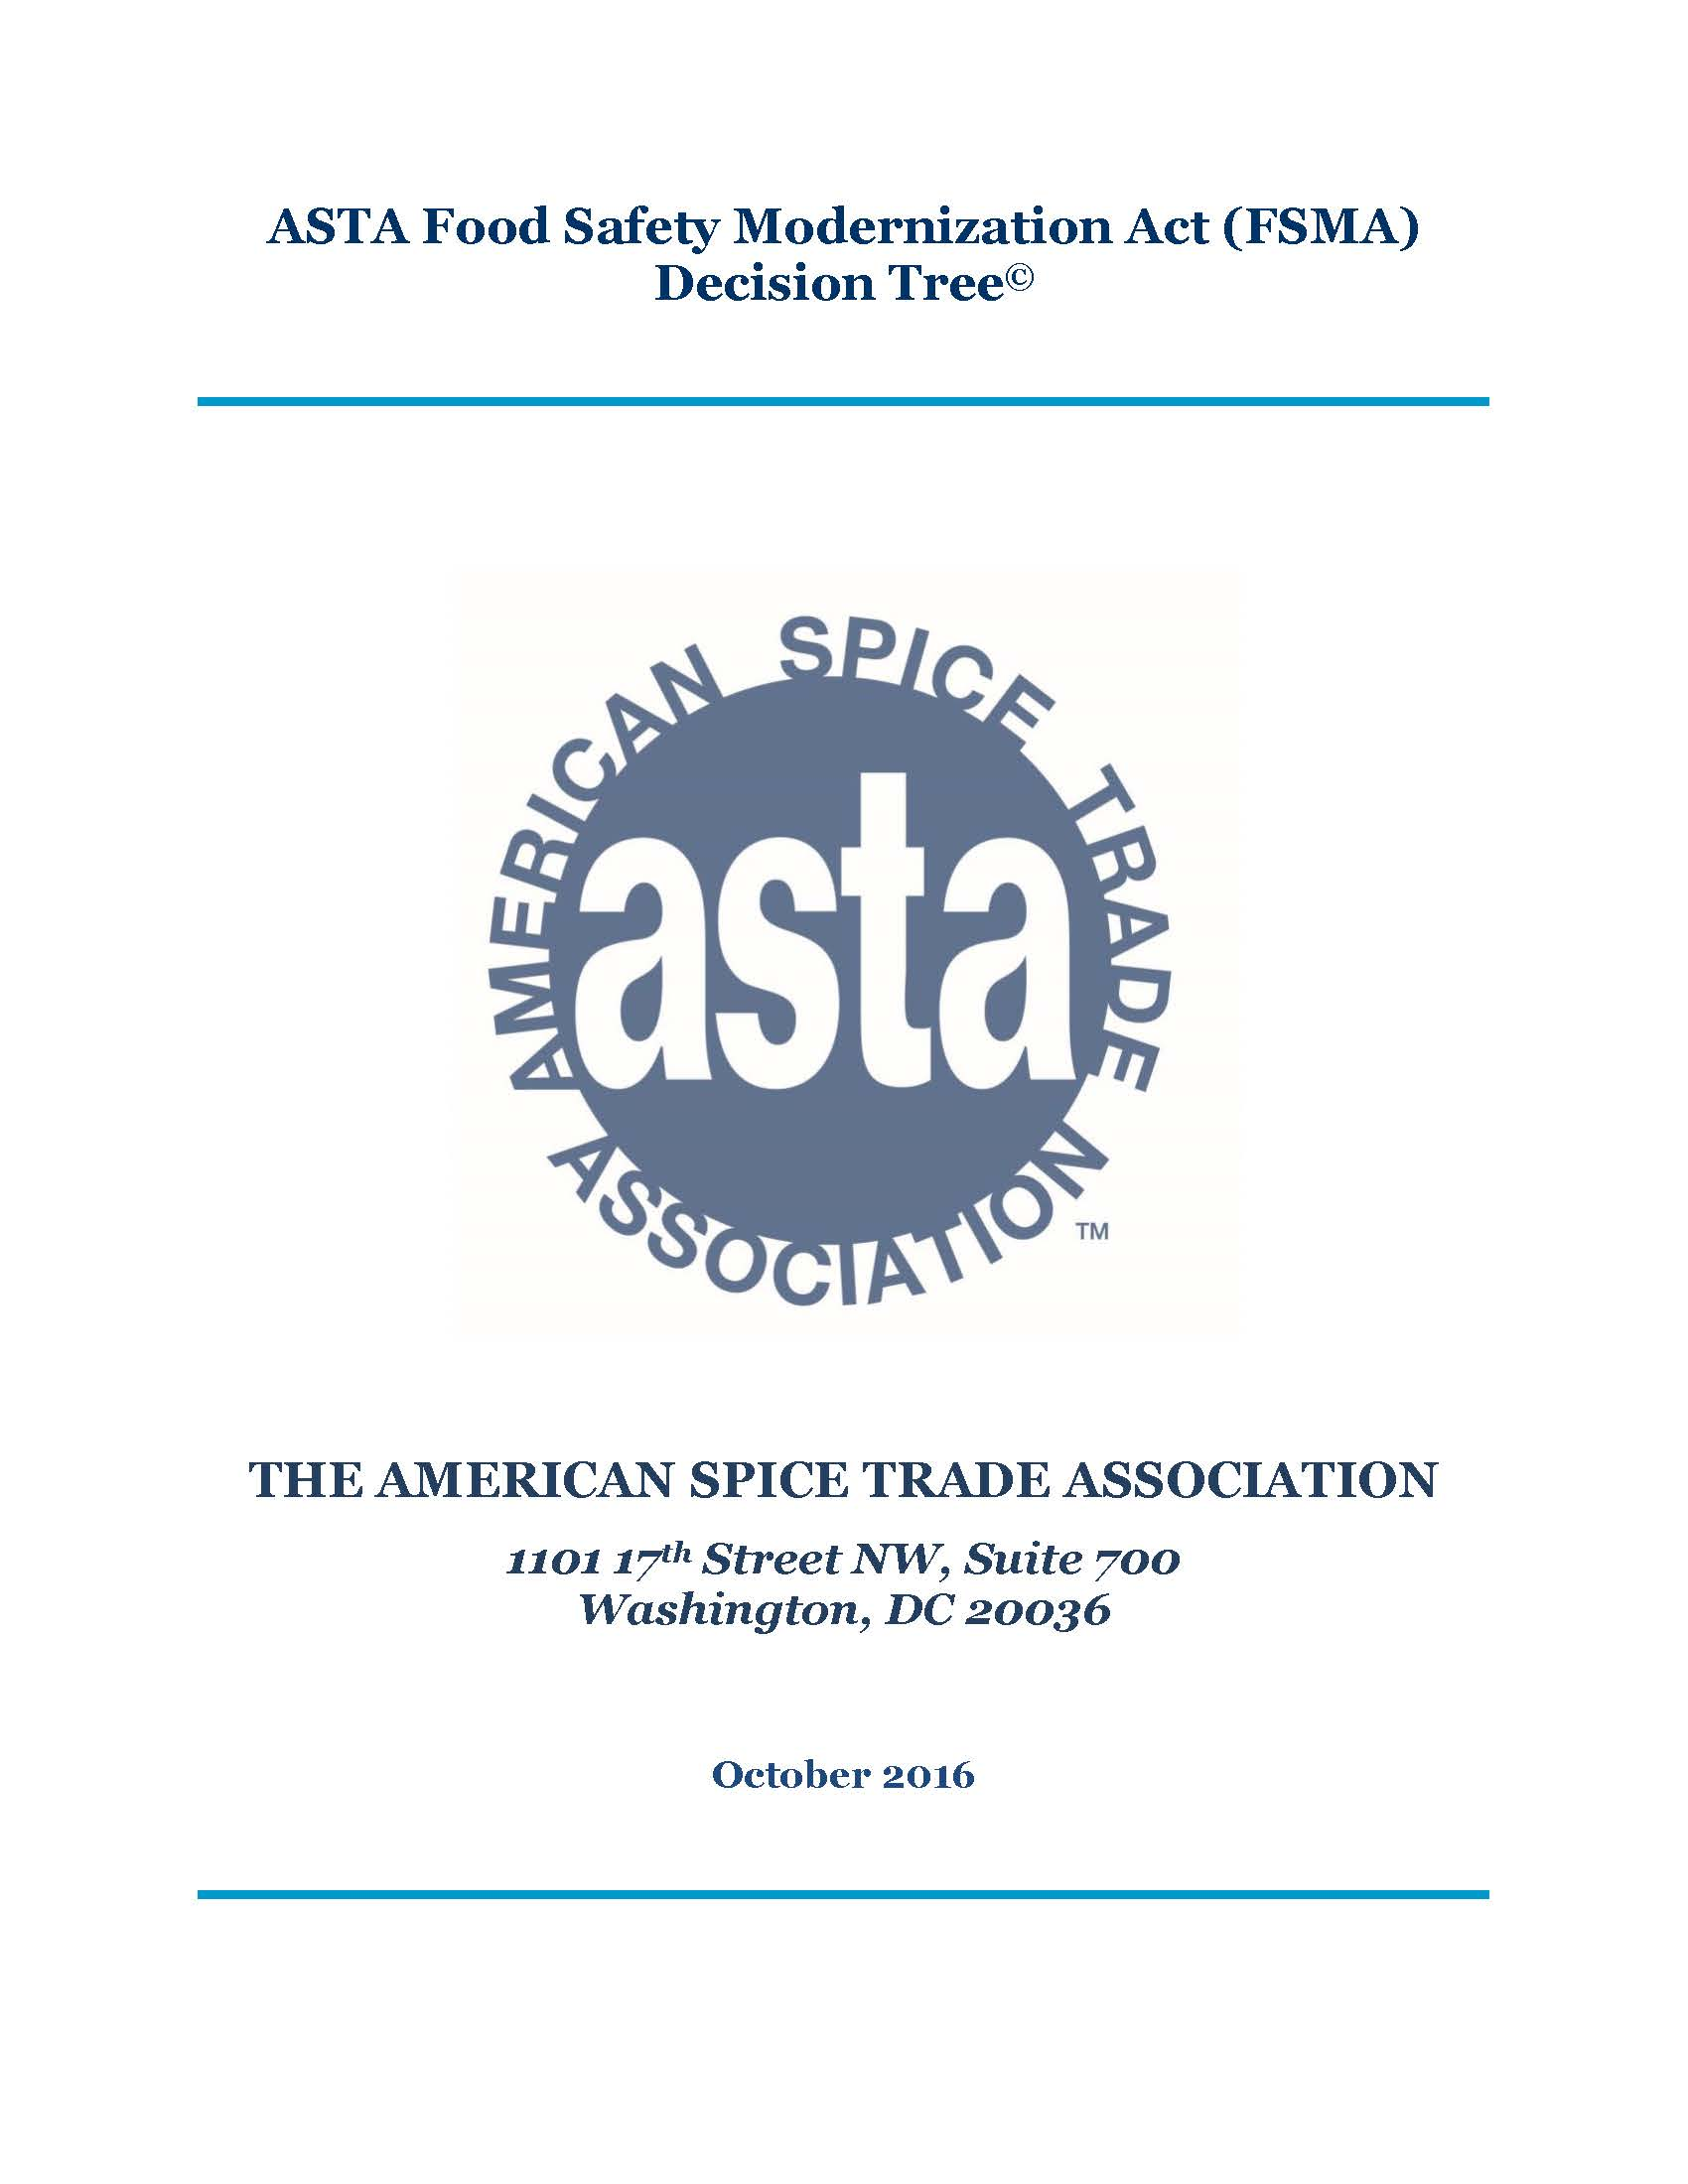 ASTA FSMA Decision Tree | ASTA: The Voice of the U S  Spice